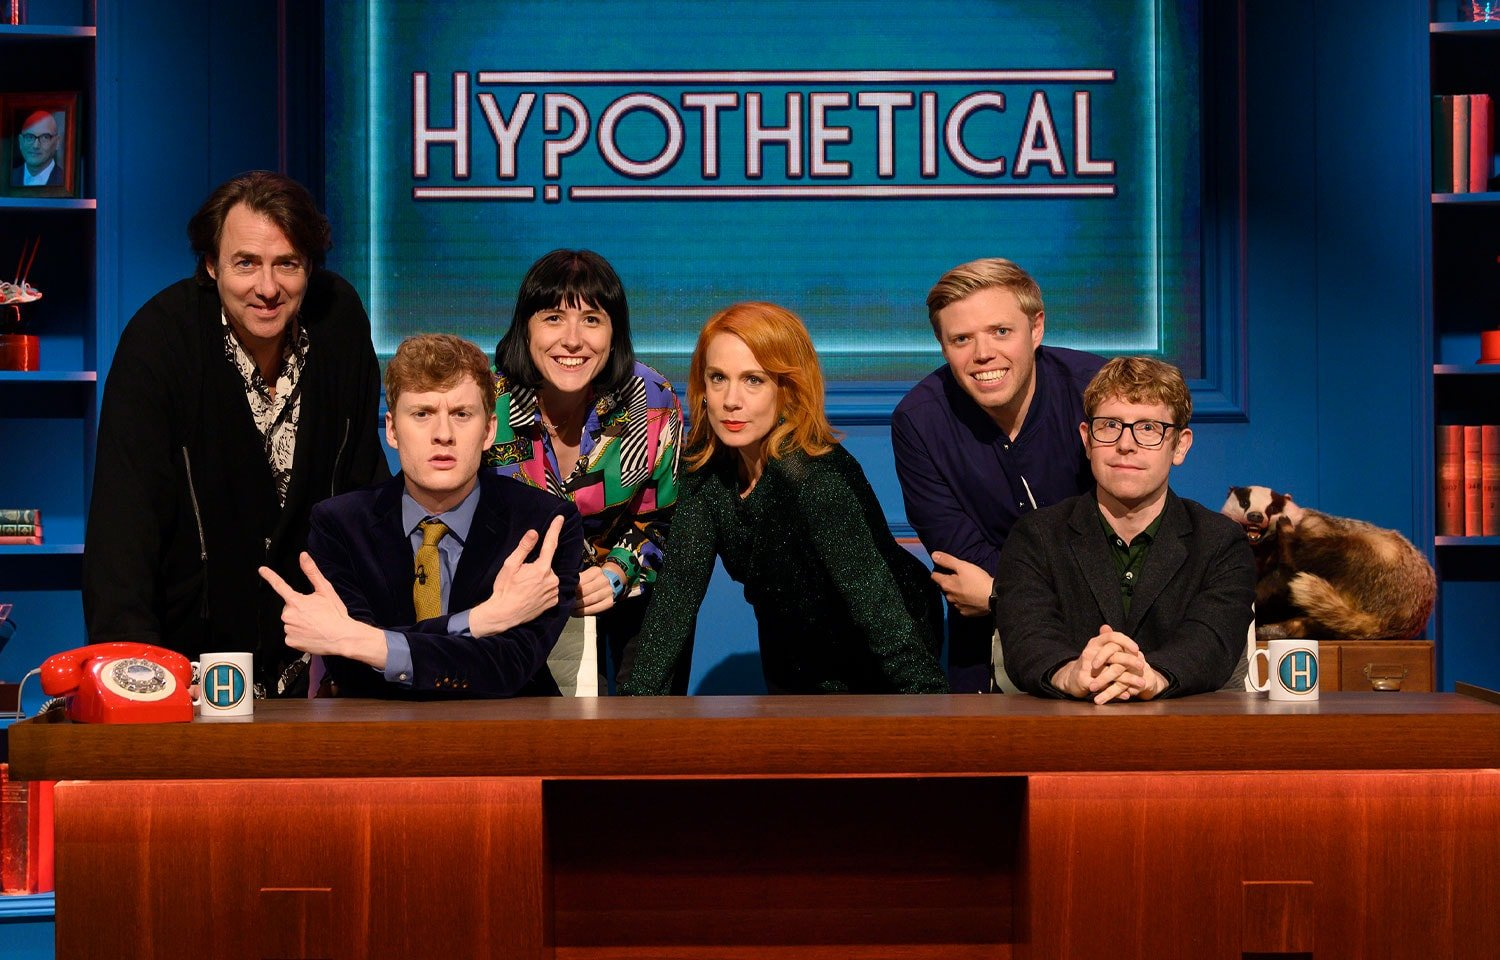 HYPOTHETICAL RETURNS FOR A SECOND SERIES ON DAVE